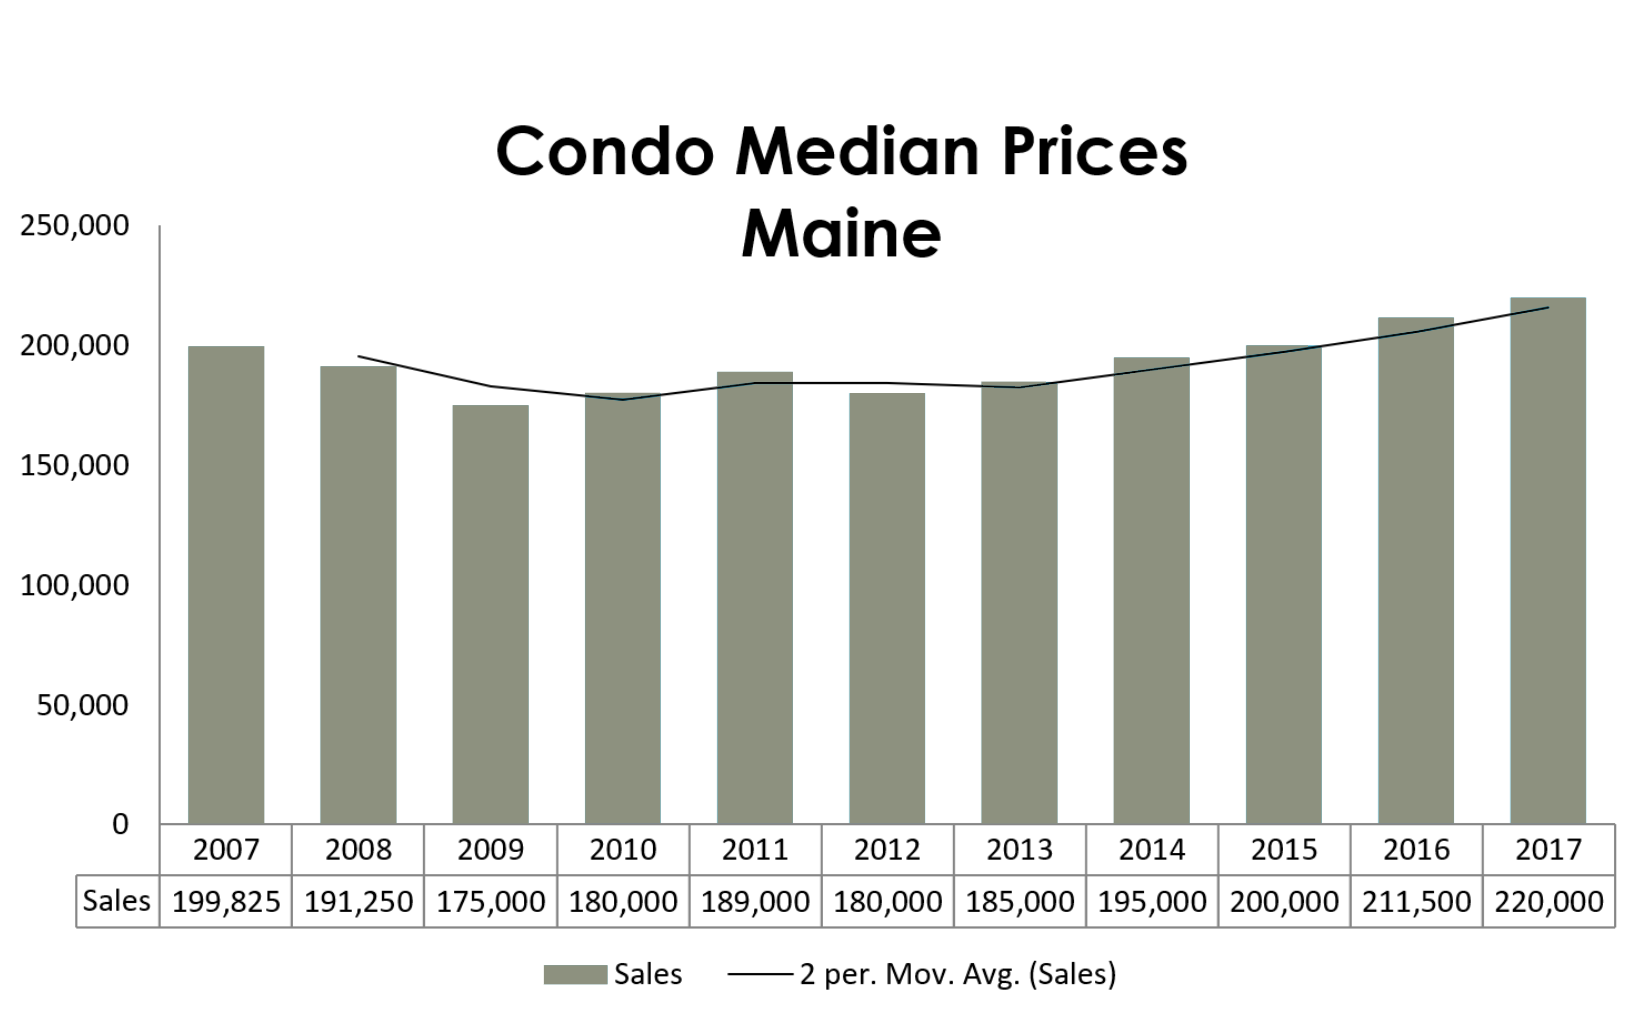 condo-median-price-maine-2017.png